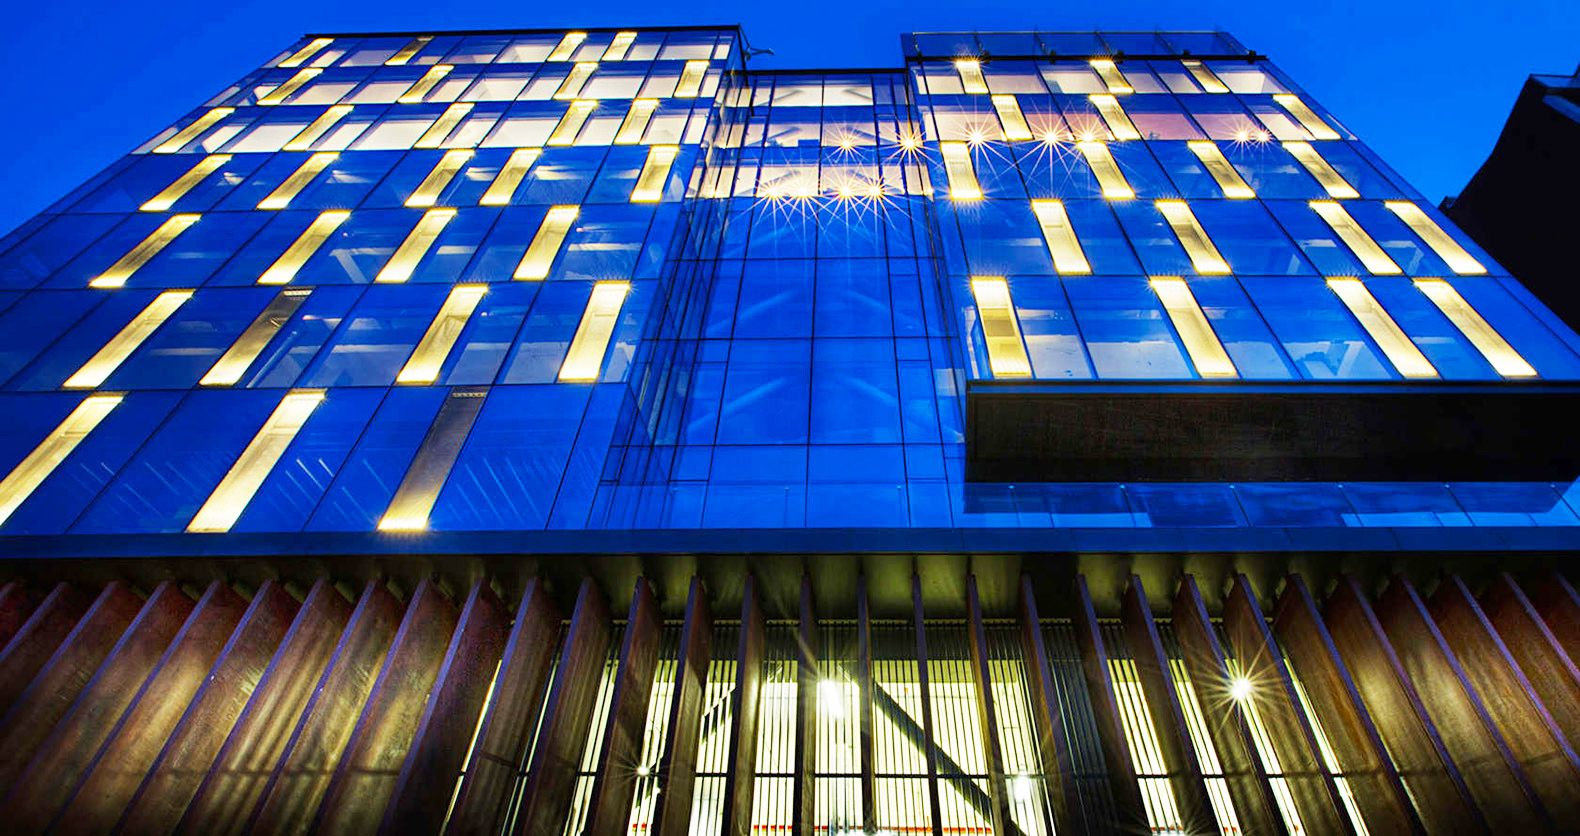 Avci architects transformed a derelict building into a striking led avci architects transformed a derelict building into a striking led lit company headquarters mozeypictures Image collections